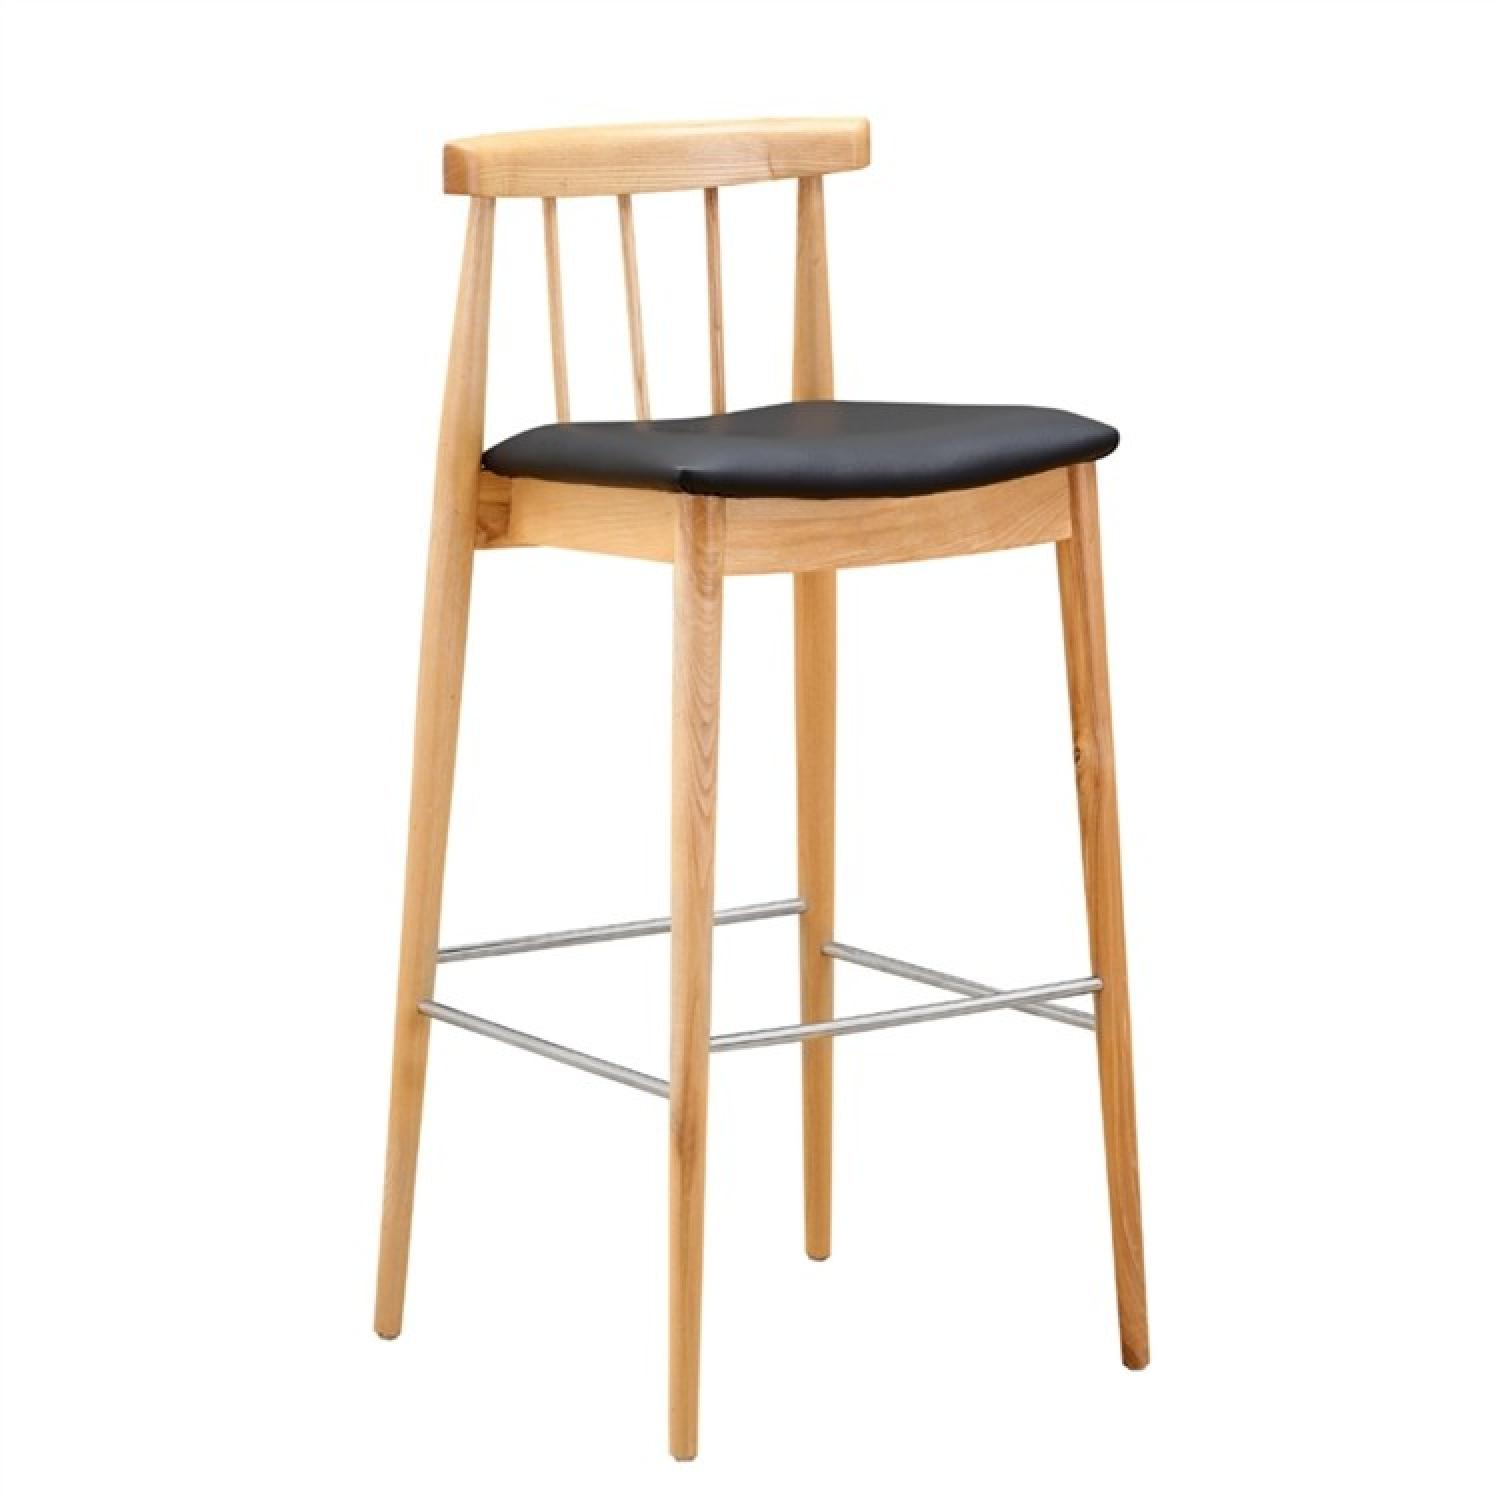 Mid Century Style Bar Stool in Solid Wood w/ Black PU Seat